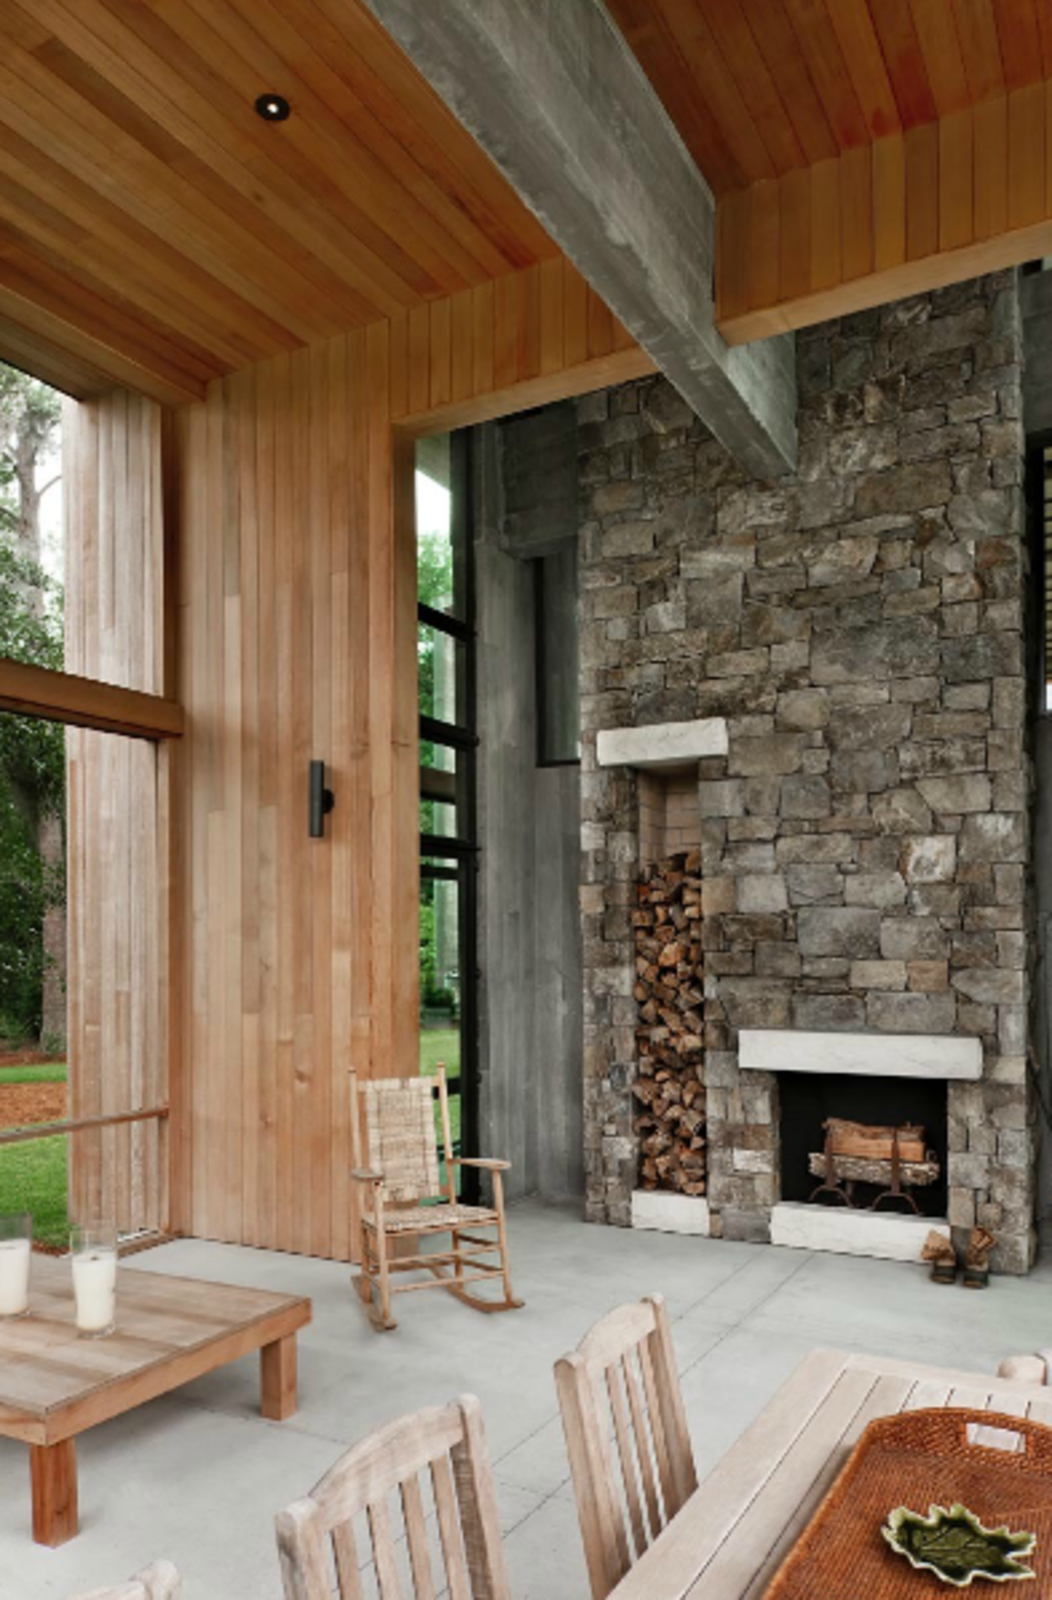 Choate selected maintenance-free materials for the project wherever possible, including the stone on this fireplace, which includes built-in storage for firewood. The stone extends 25 feet up to the wood-clad ceiling, emphasizing the home's grand scale. 97+ Modern Fireplace Ideas by Dwell